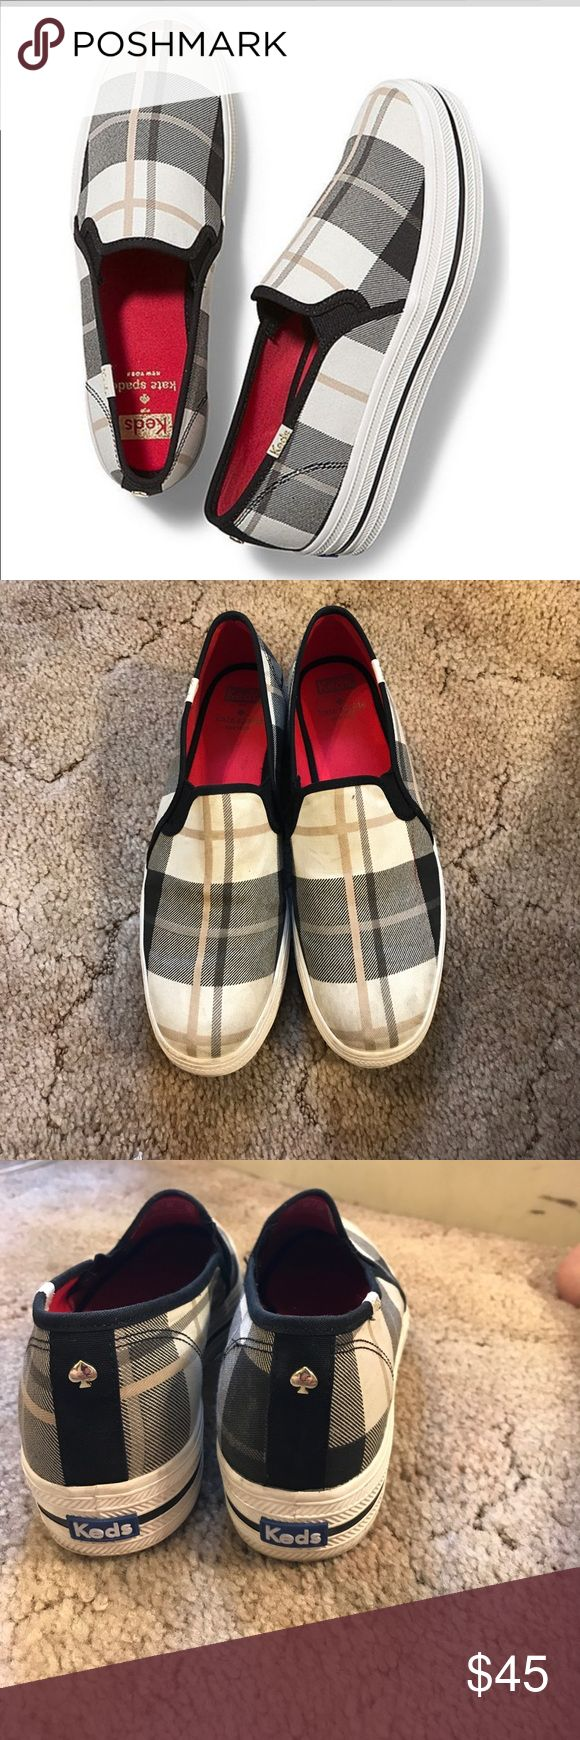 Kate Spade Keds Slip ons Gently used Slip on. Some on wear on top of toes but I haven't tried to clean them. Always worn with socks so no stinky smell. Excellent condition and great for fall! kate spade Shoes Sneakers